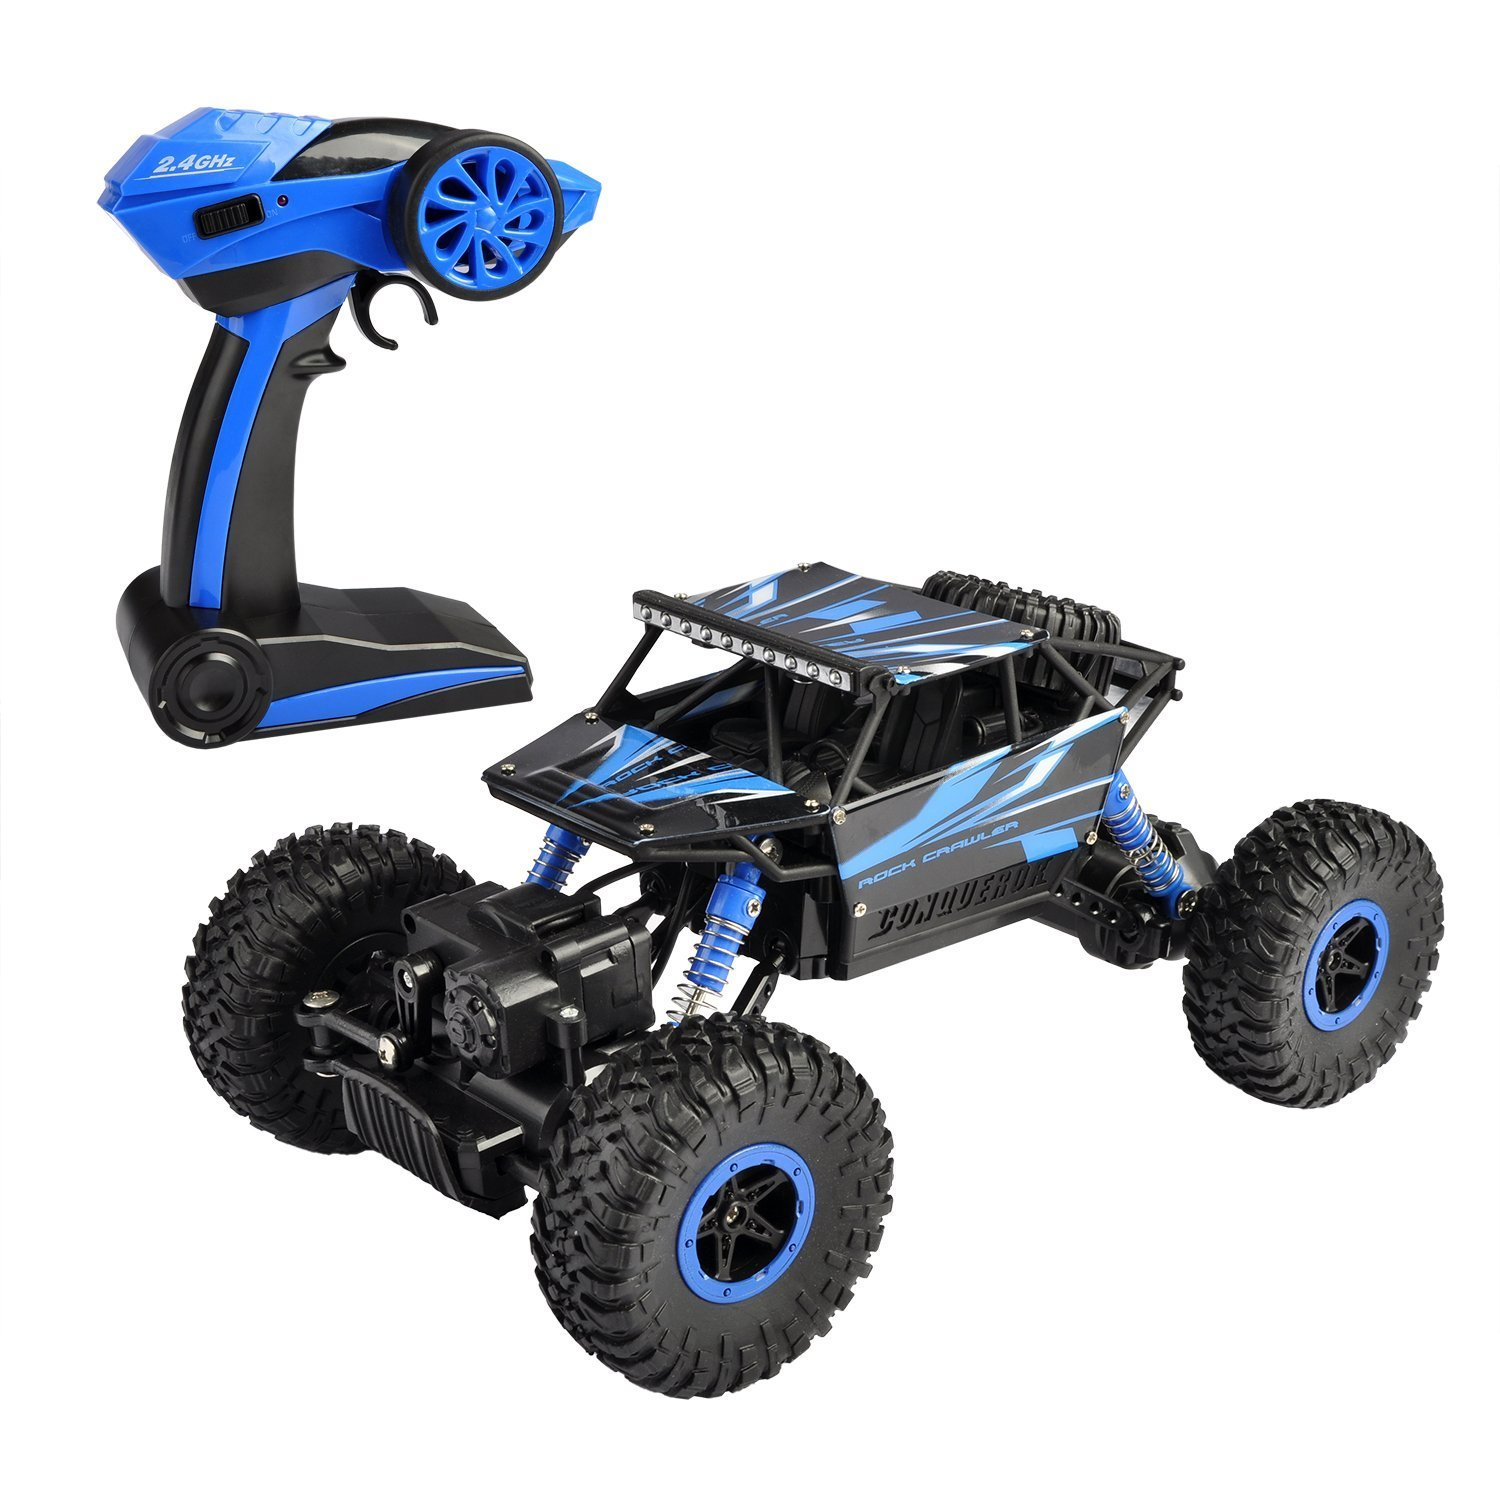 SZJJX RC Car Off-Road Remote Control Car review